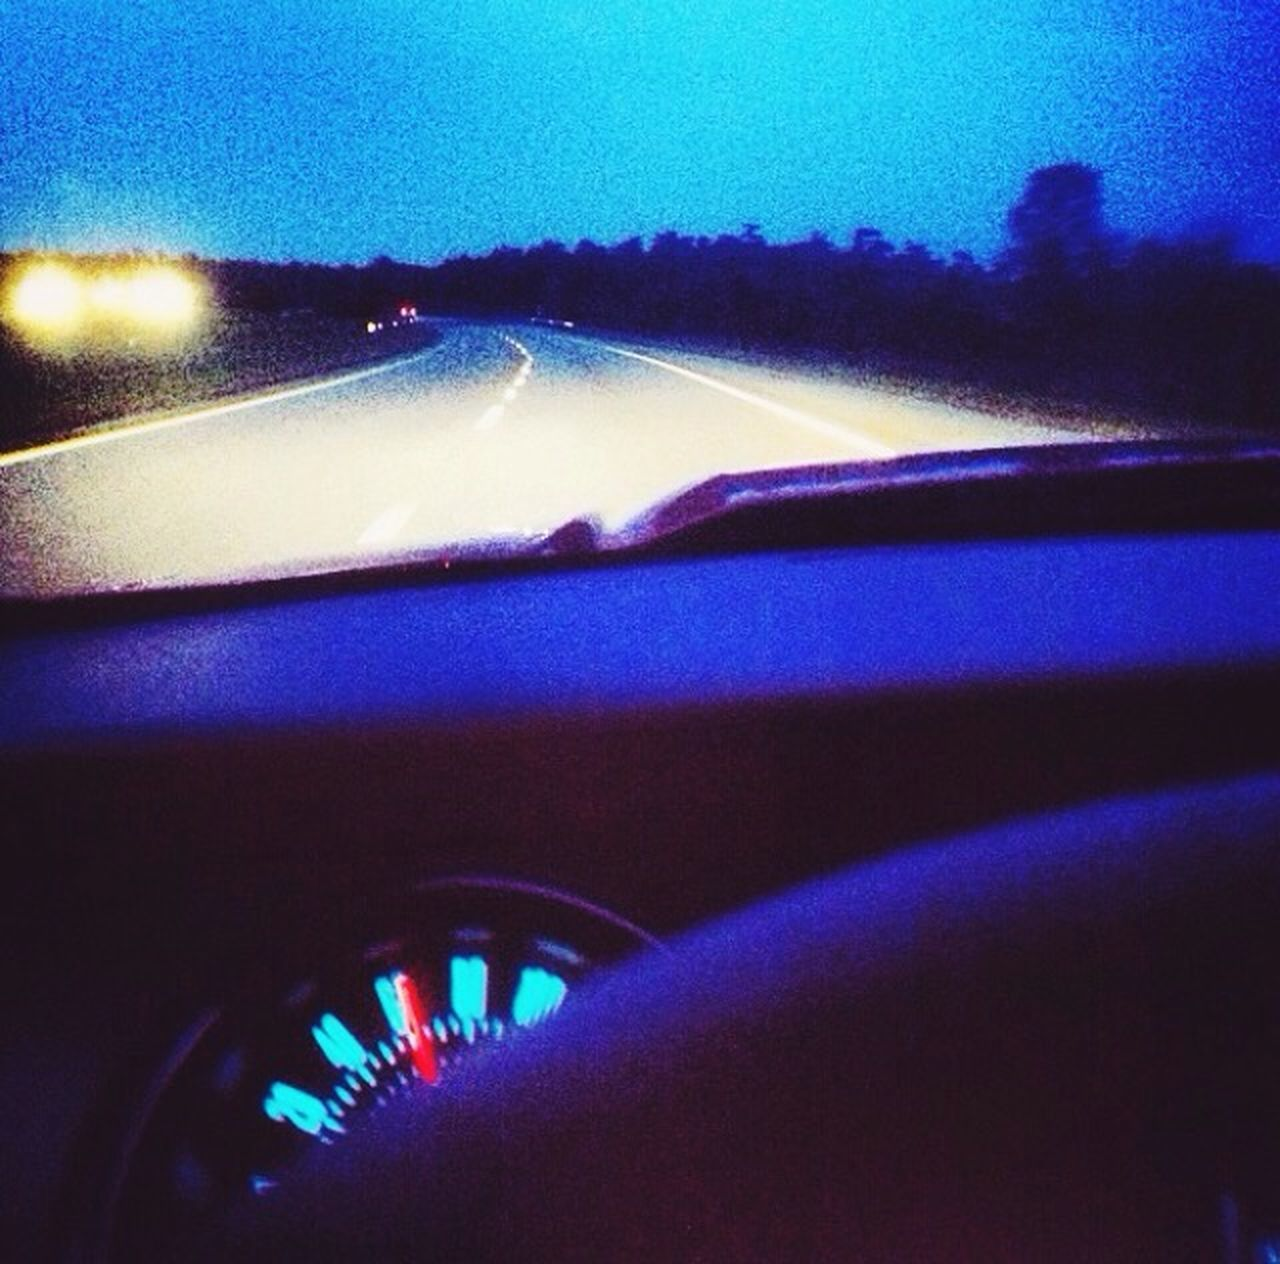 vehicle interior, transportation, car interior, car, mode of transport, land vehicle, windshield, travel, dashboard, illuminated, car point of view, journey, no people, the way forward, night, close-up, road trip, speedometer, sky